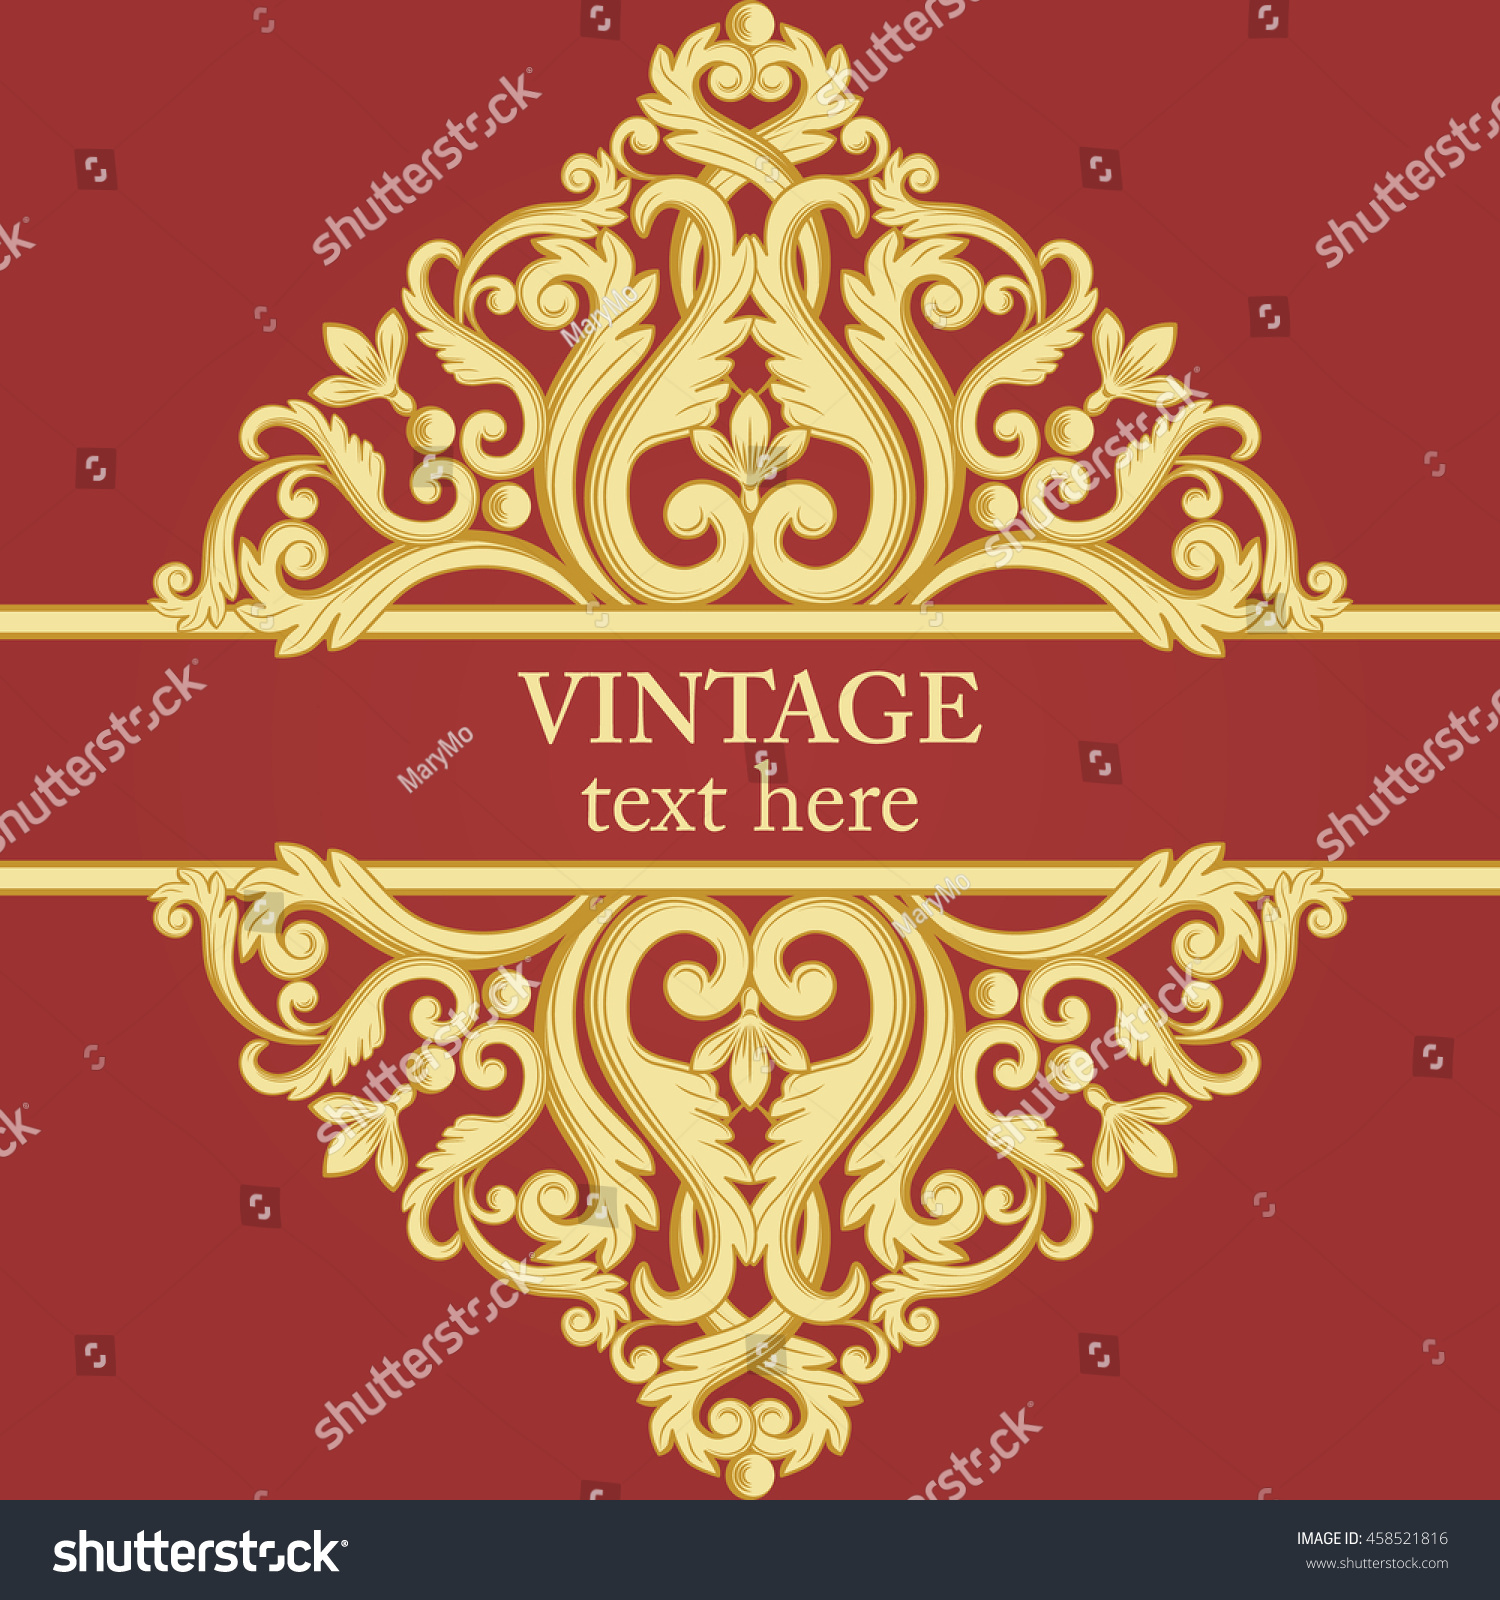 Template Baroque Vintage Element Gold Red Stock Illustration ...